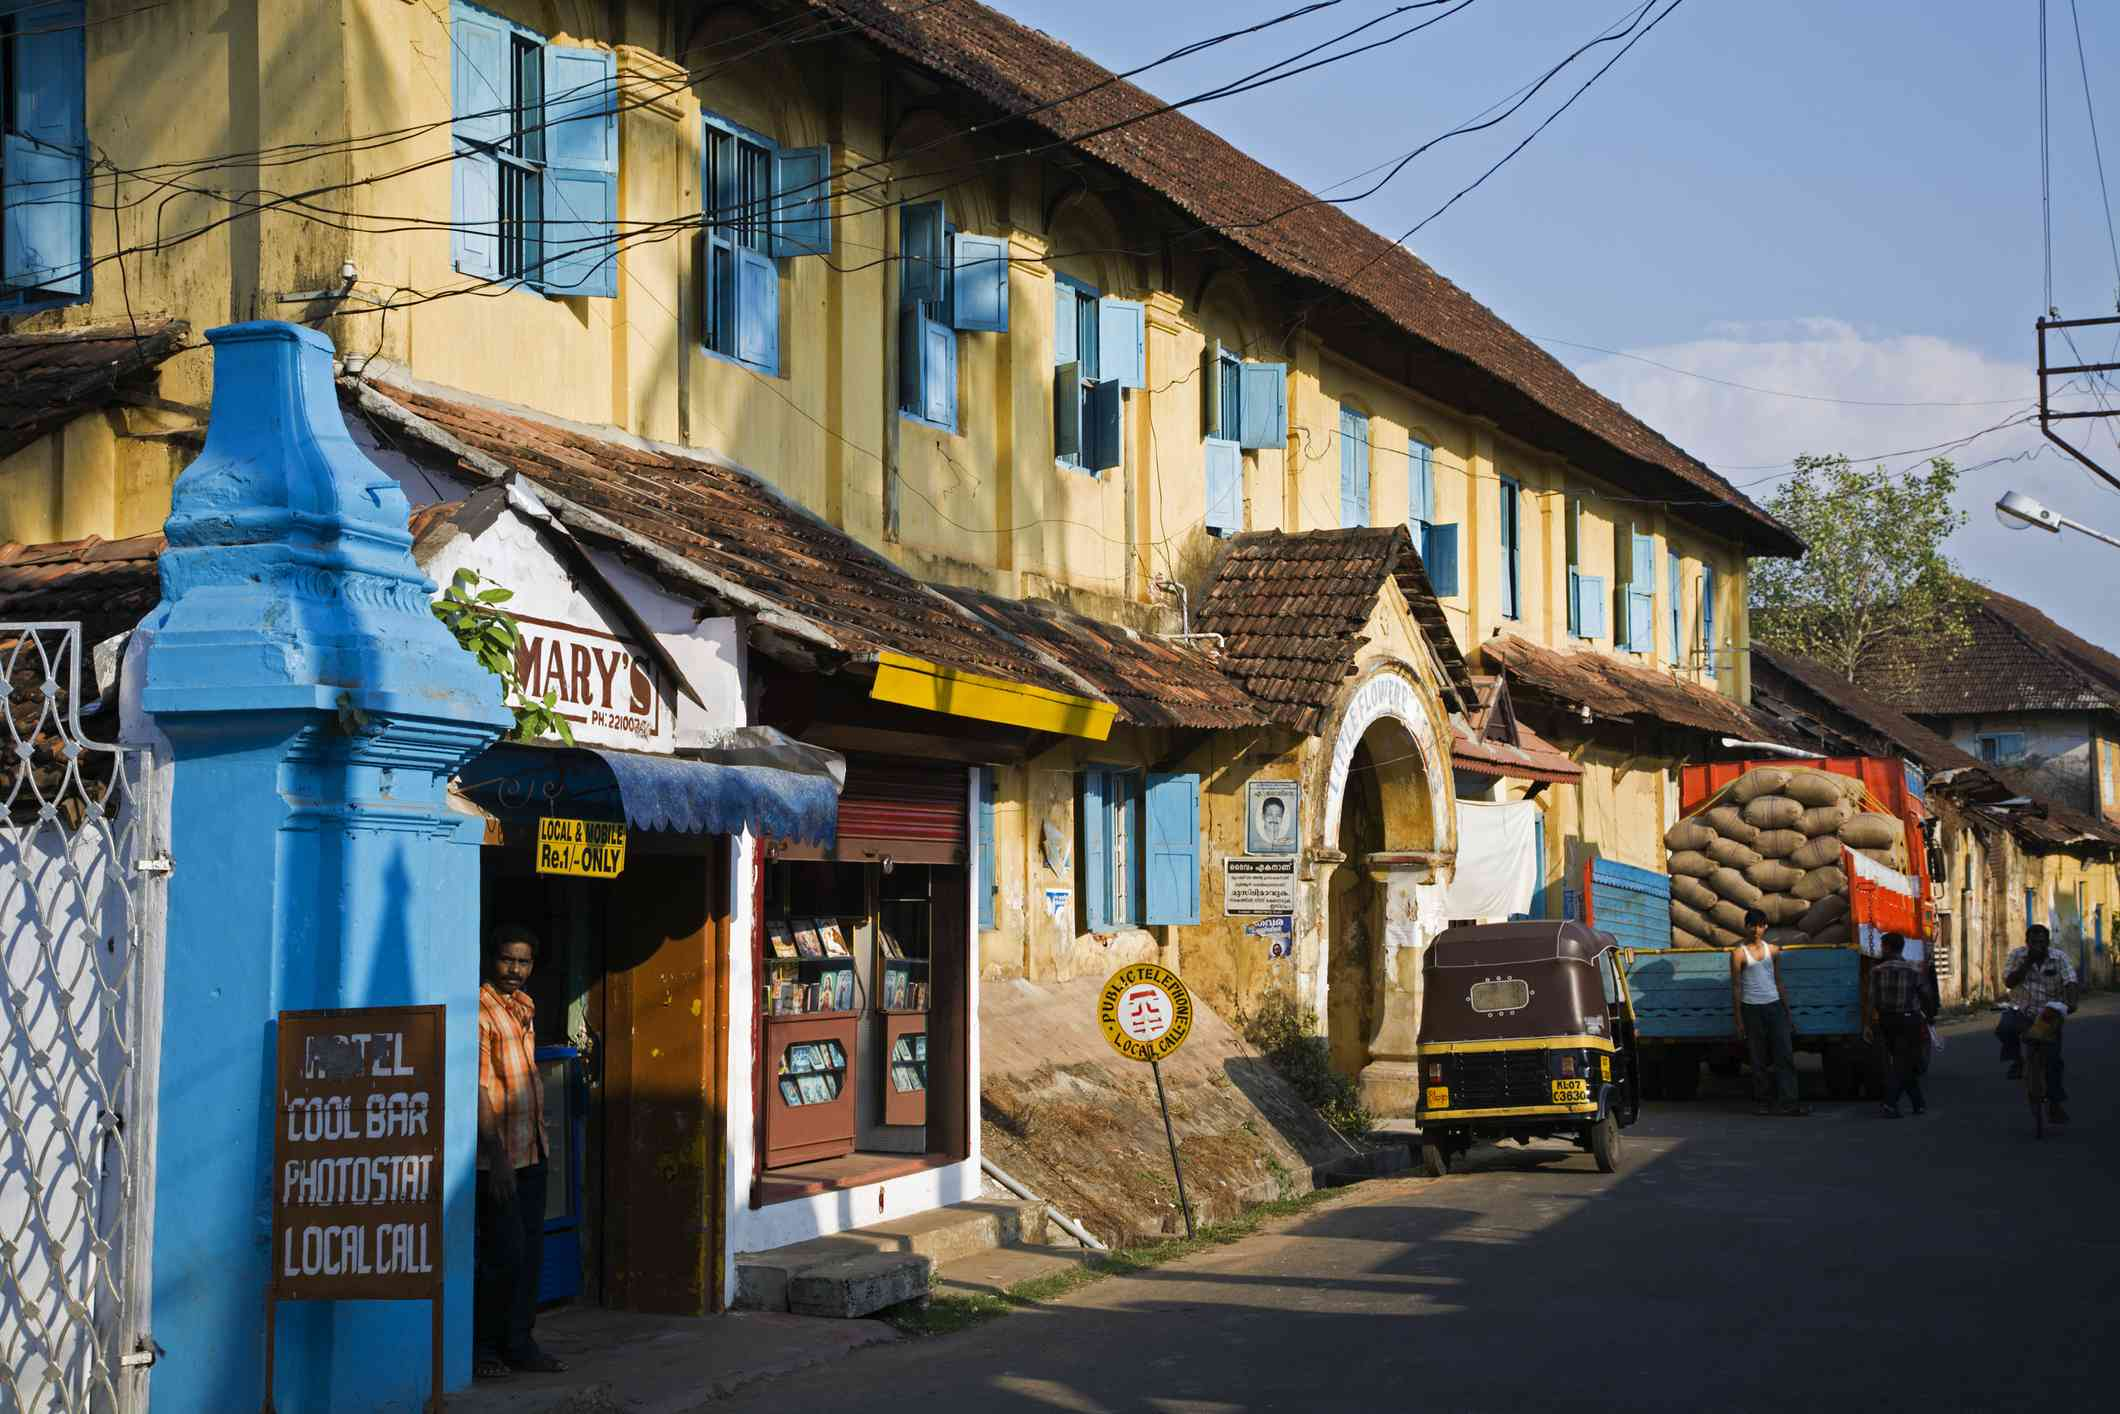 Street lined with spice warehouses in Mattancherry